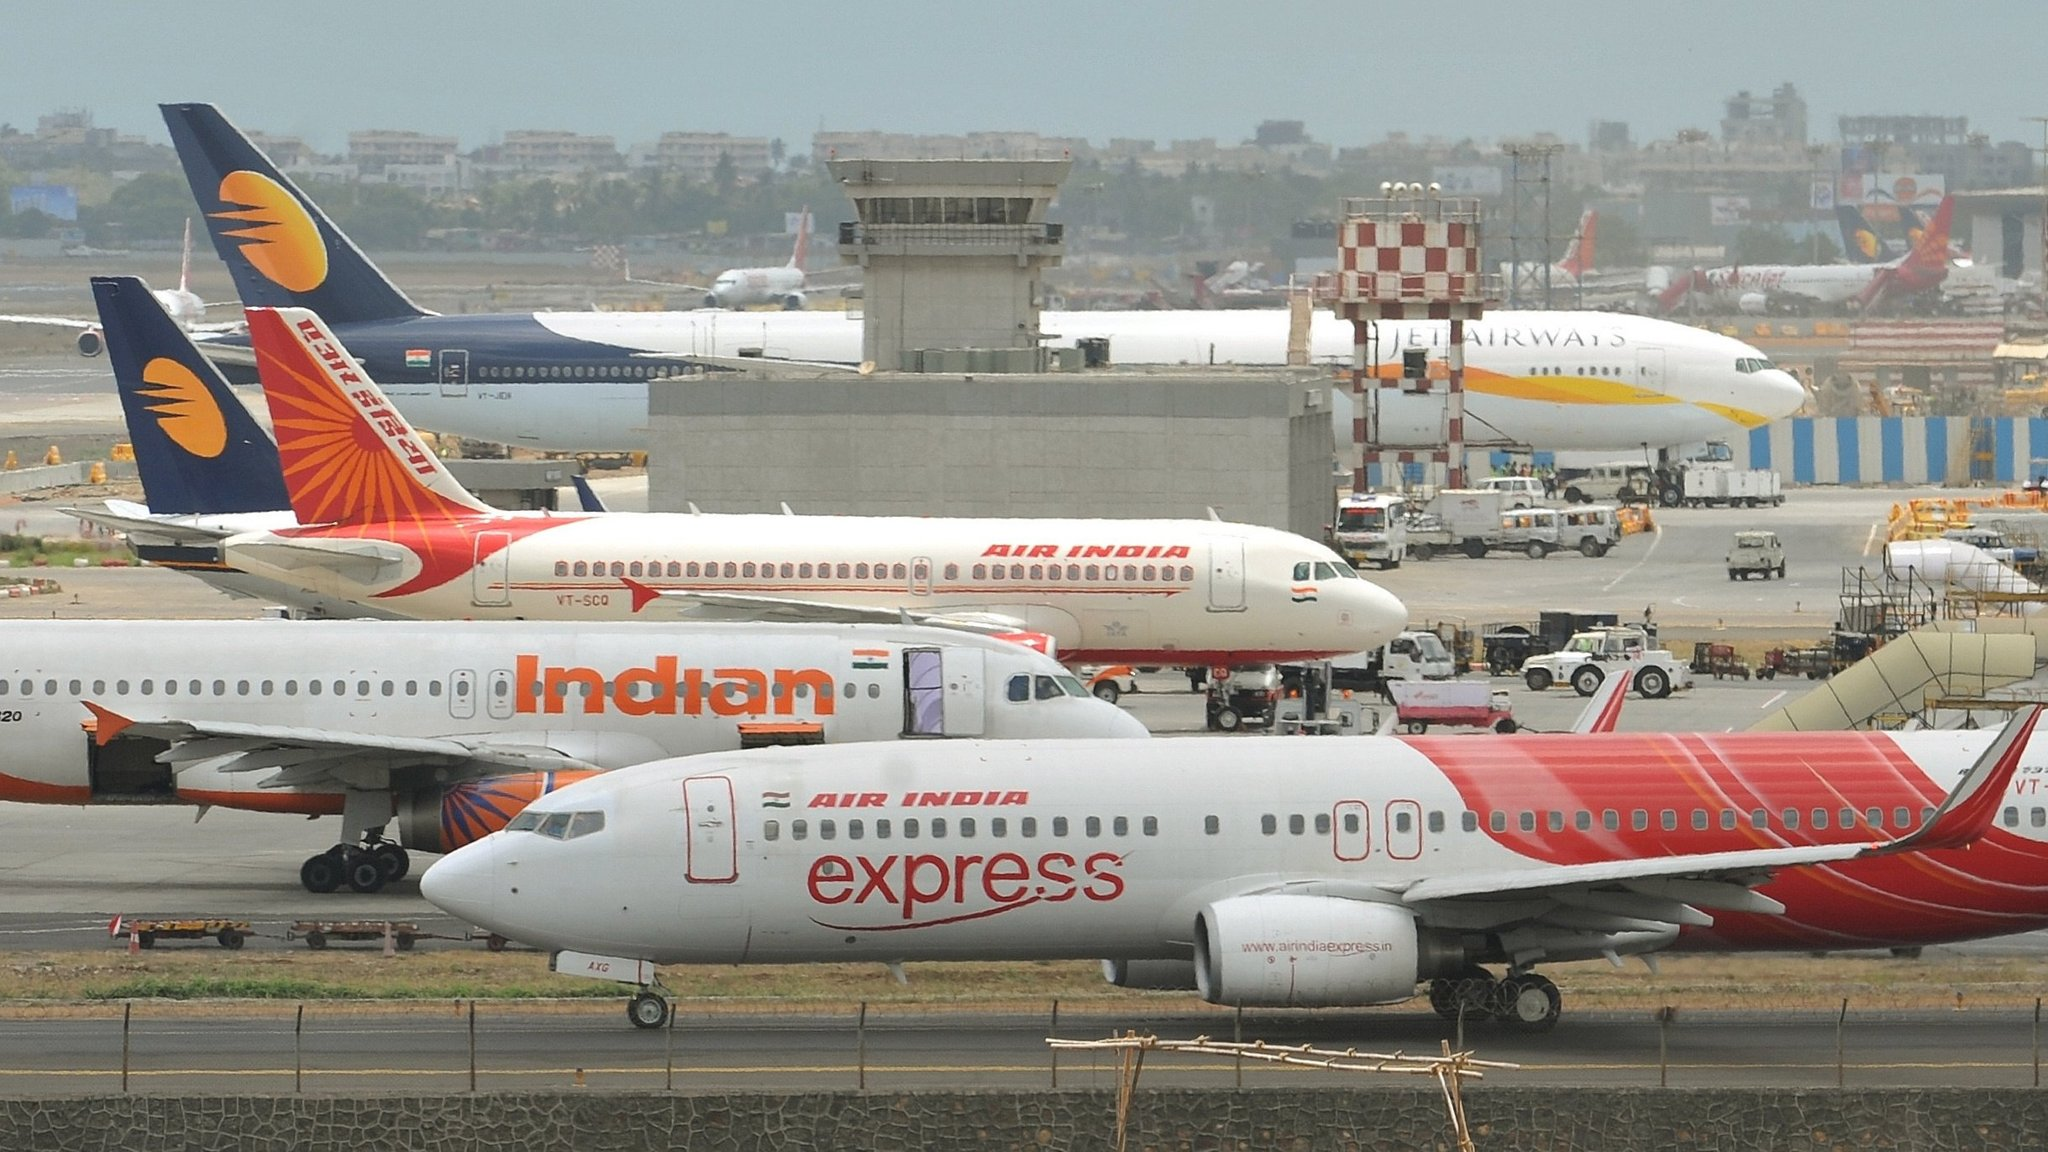 Indian Airlines' aircraft